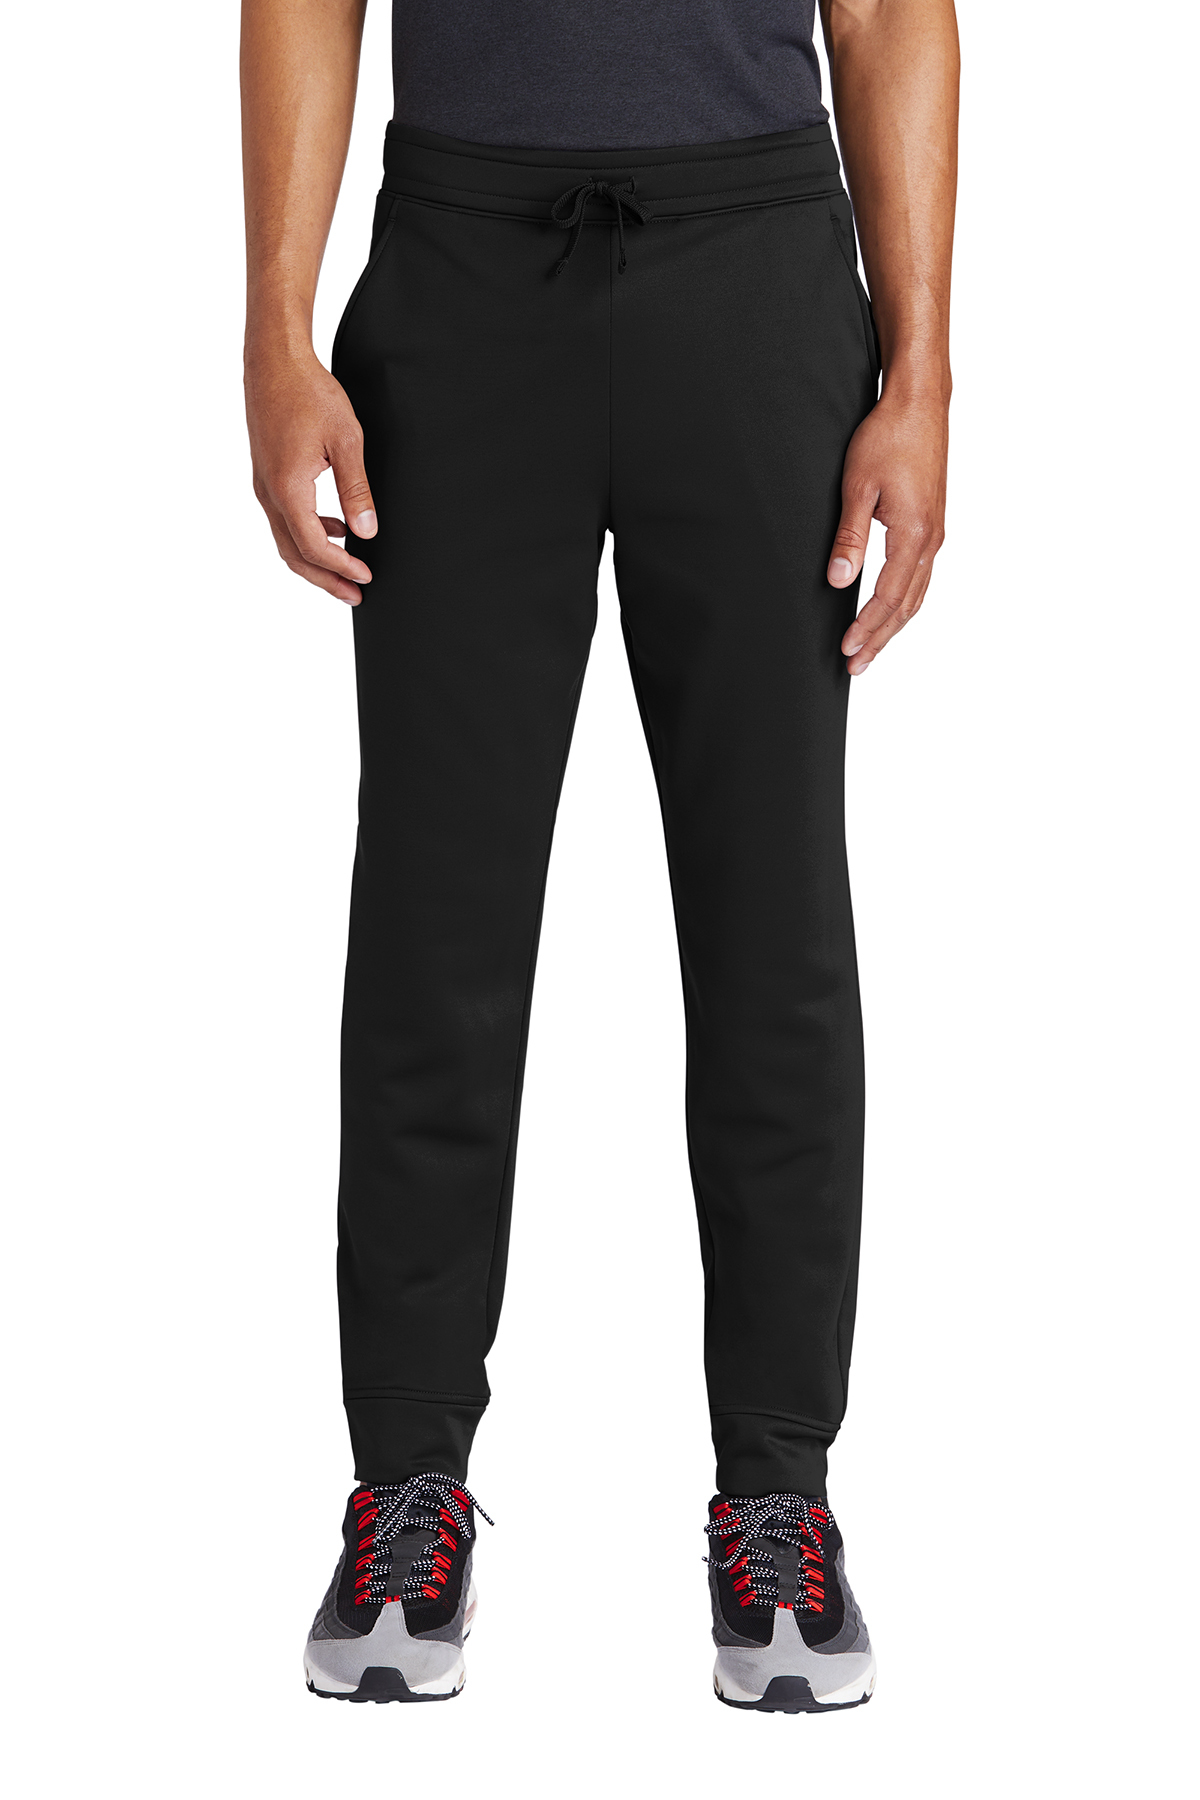 Sport Tek Sport Wick Fleece Jogger Sweatpants Sweatshirts Fleece Sport Tek Next day delivery and free returns available. sport tek sport wick fleece jogger sweatpants sweatshirts fleece sport tek